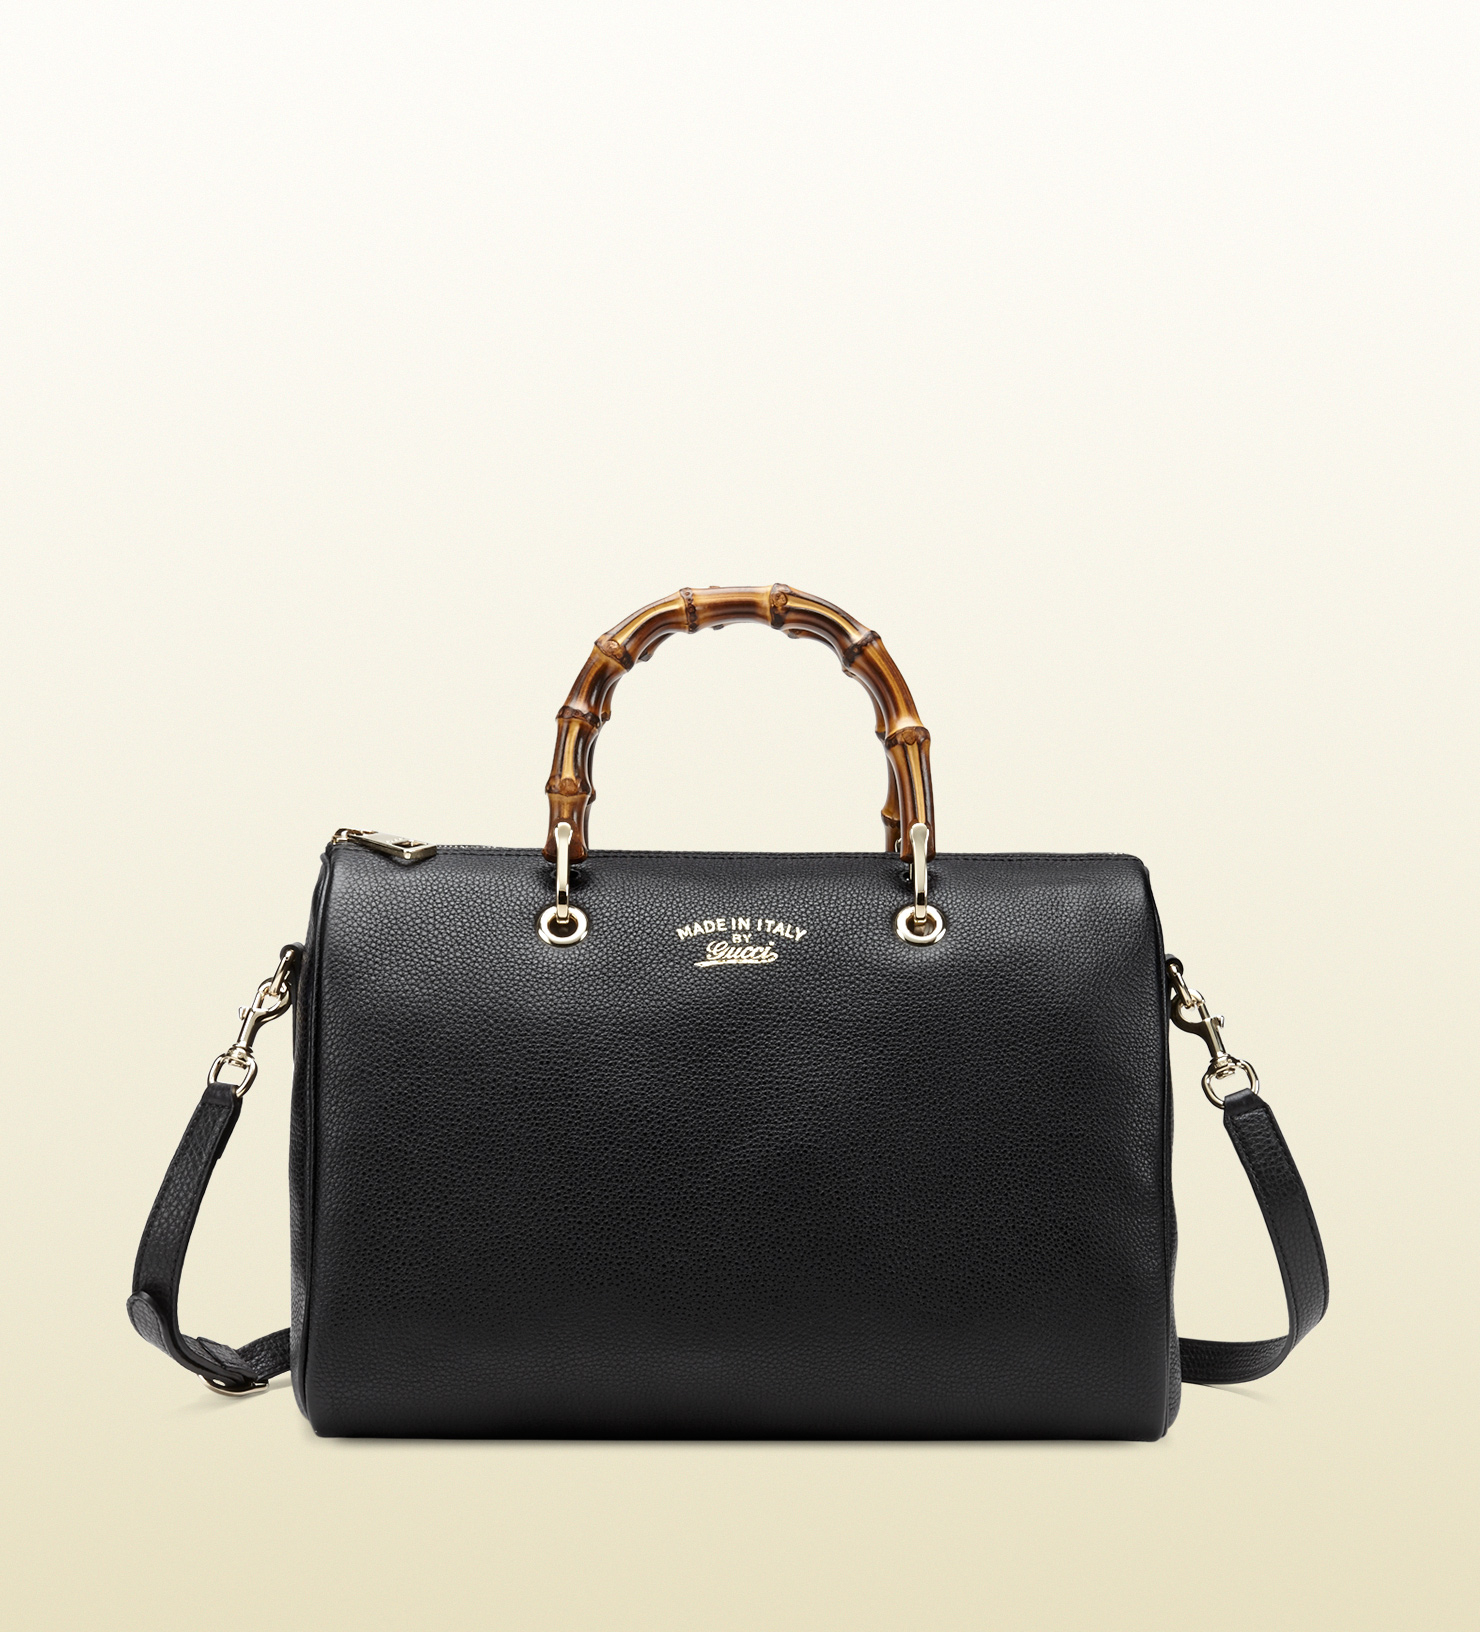 Gucci Bamboo Shopper Leather Boston Bag in Black (bamboo) | Lyst